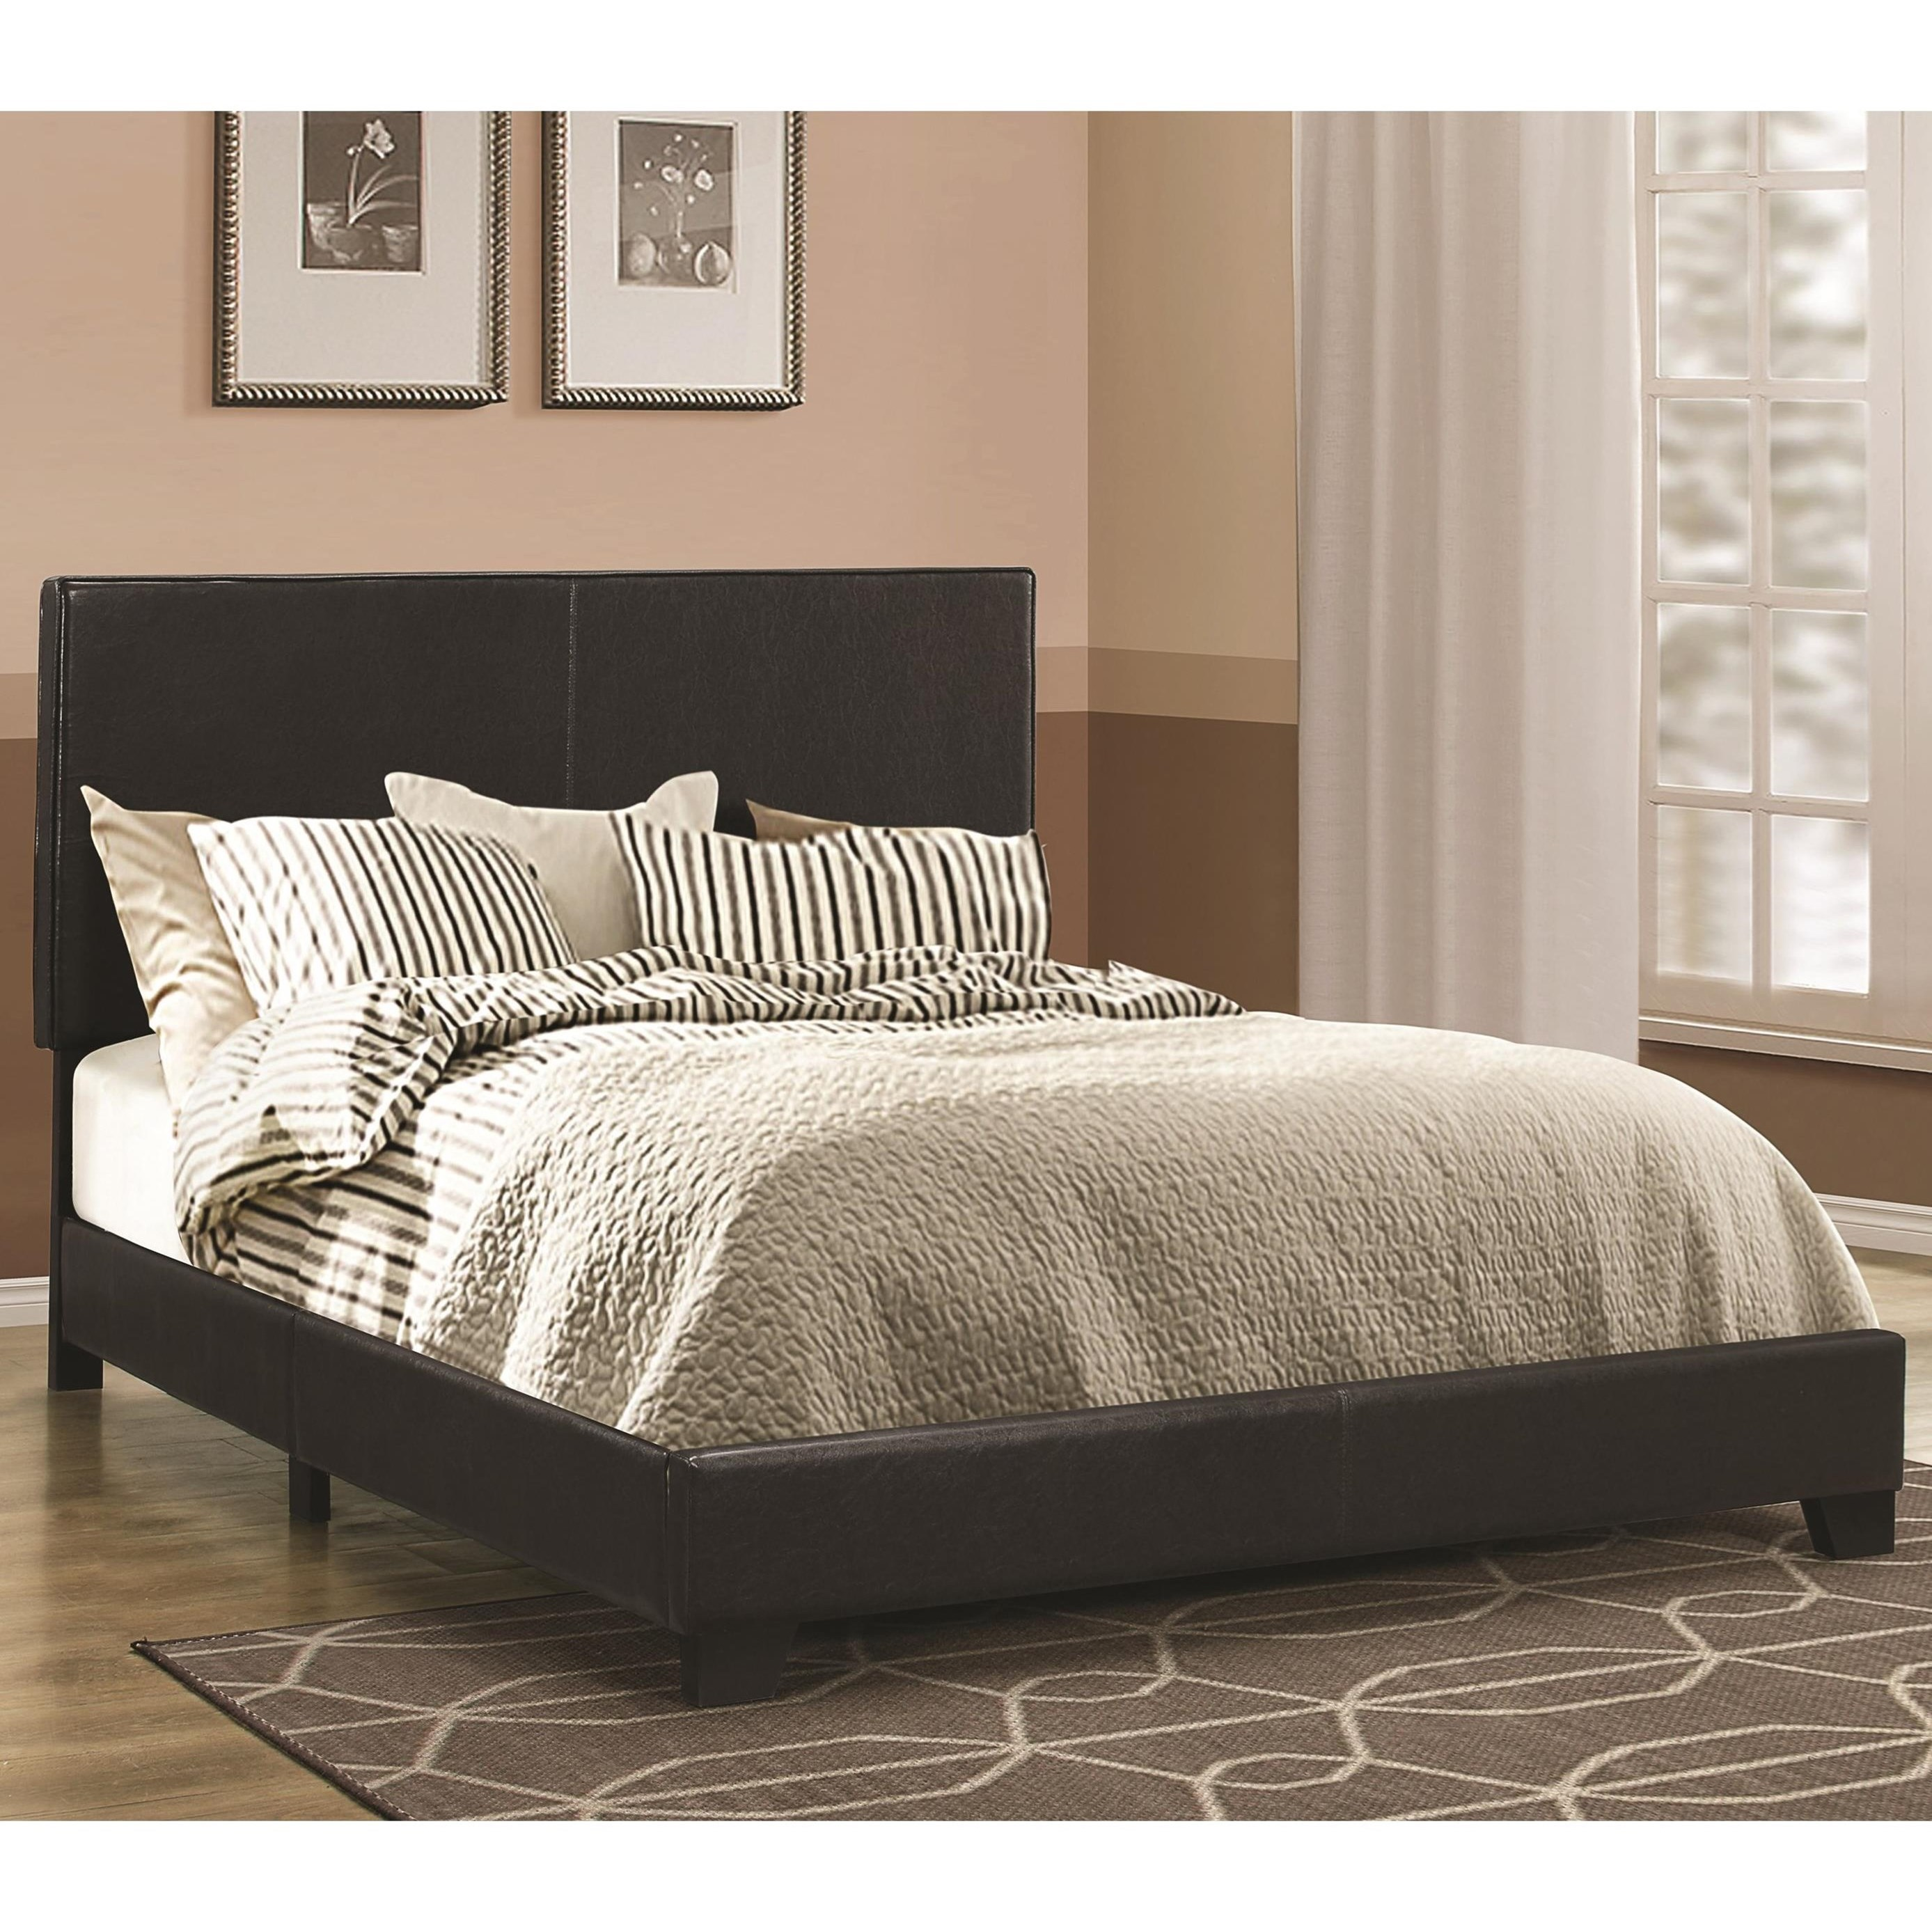 Dorian Black Twin Bed by Coaster at Northeast Factory Direct